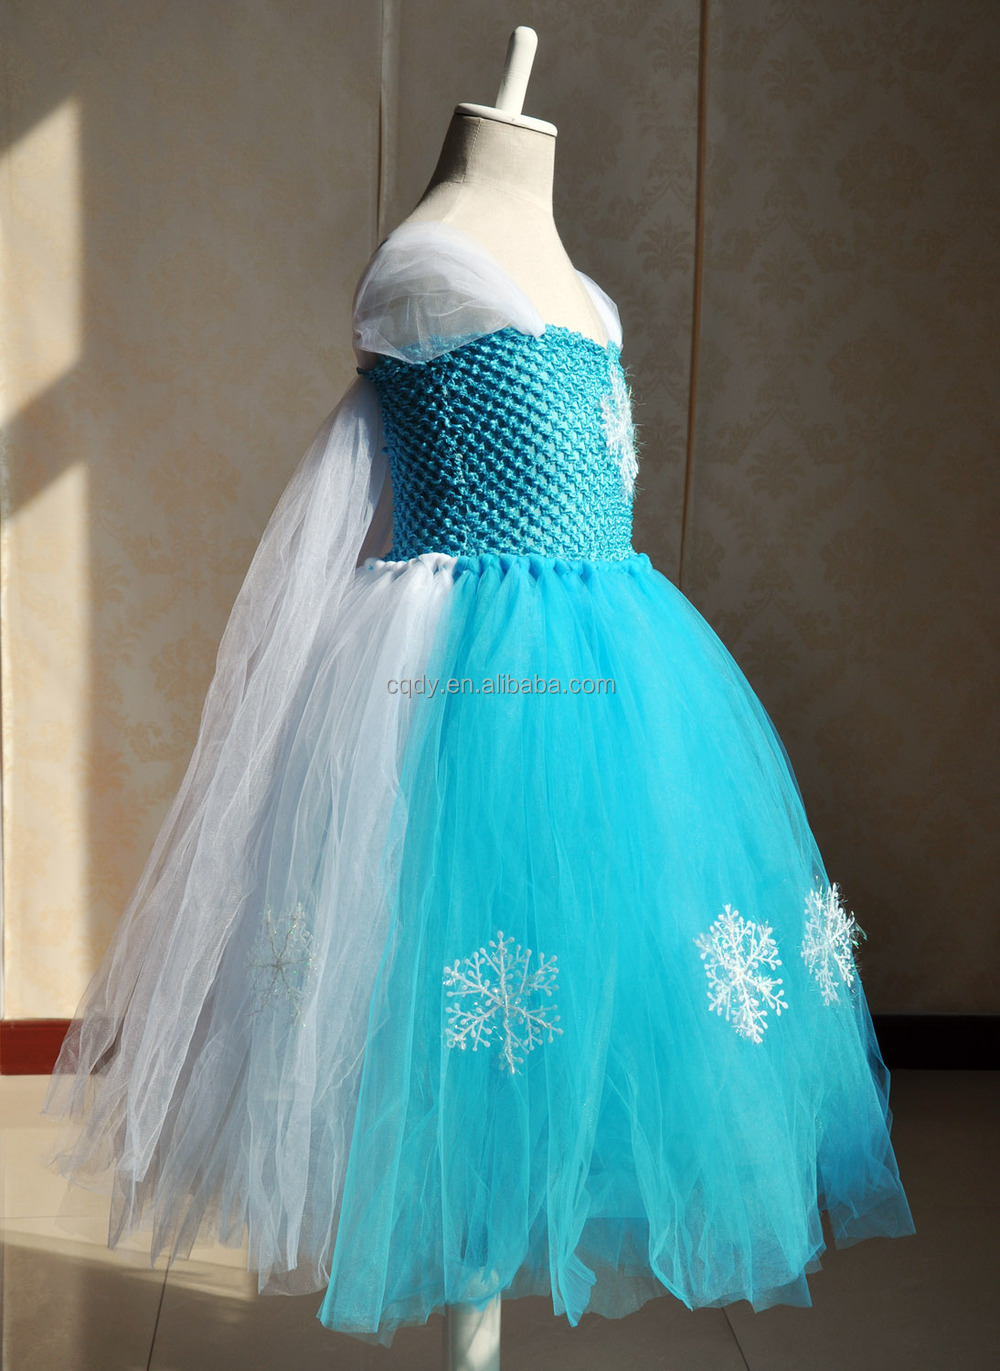 2017 New Arrival Custom Made Frozen Elsa Princess Dress Costume For ...